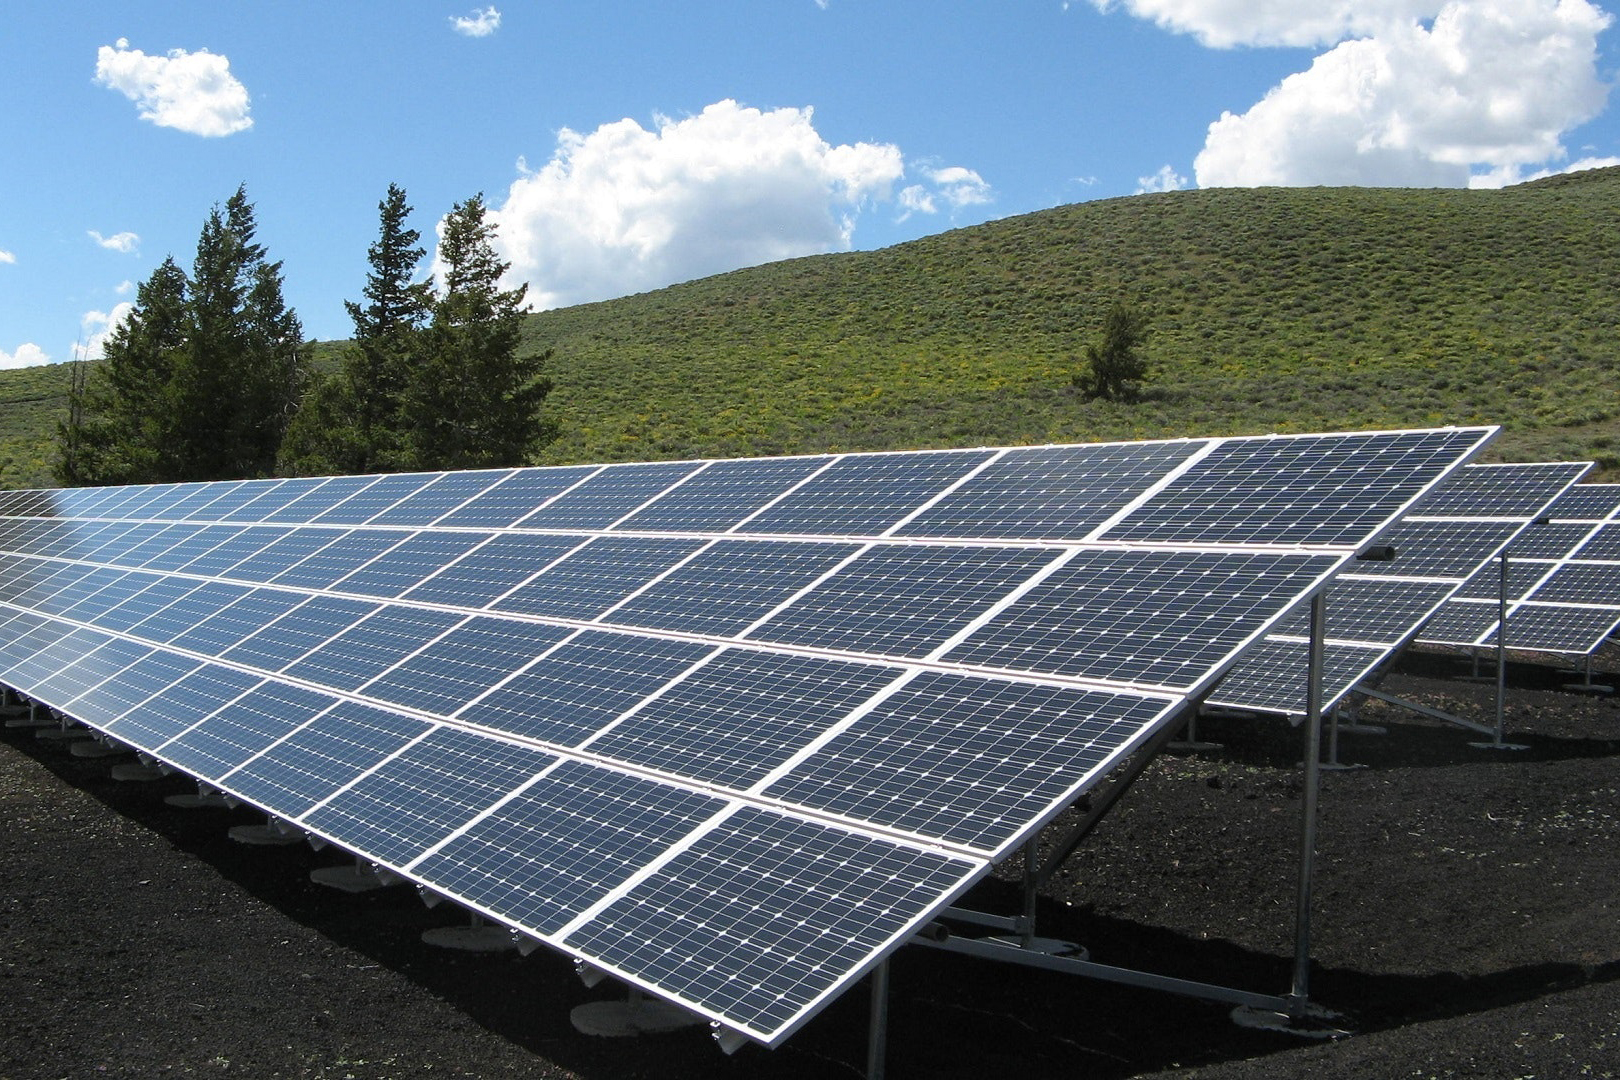 solar-panel-array-power-sun-electricity-159397.jpeg